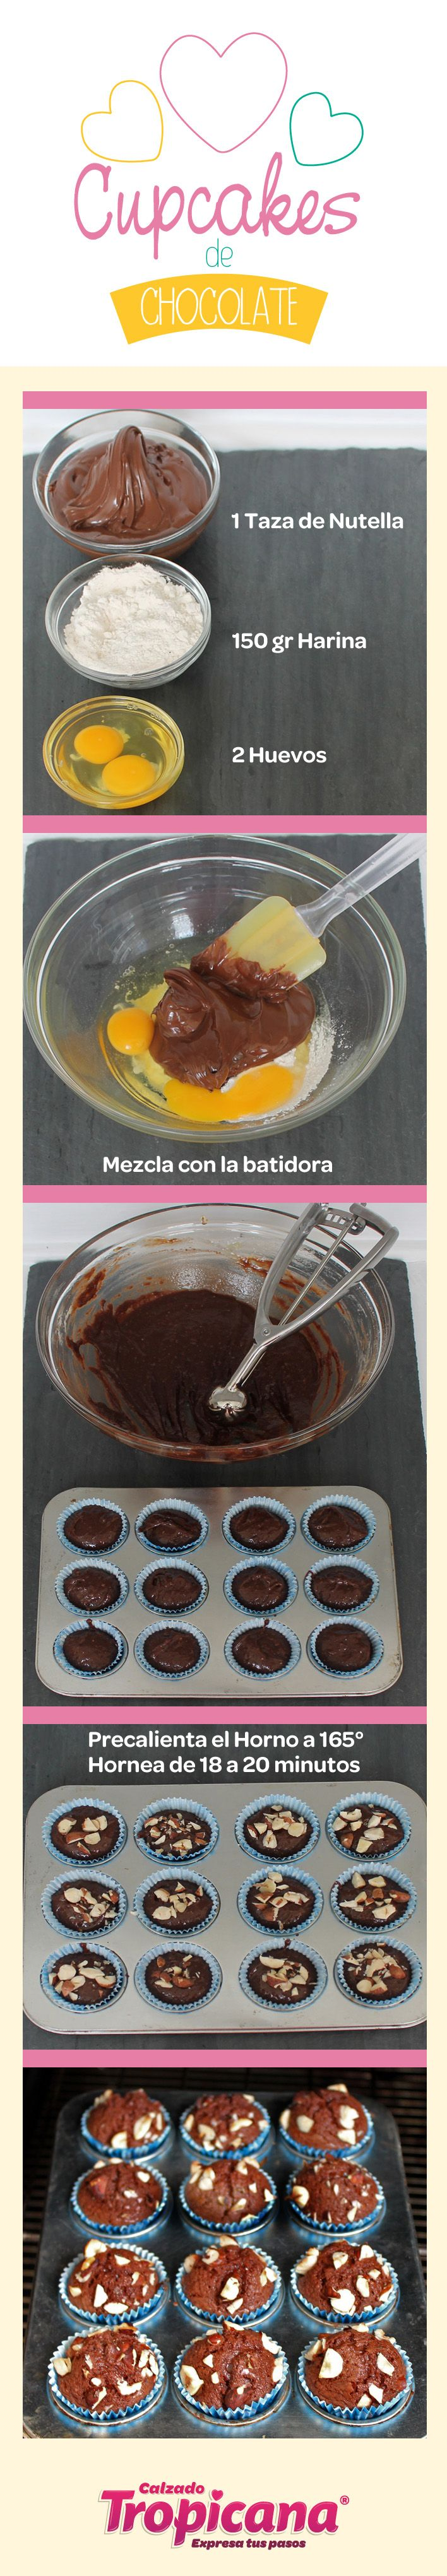 Nutella Brownies Three Ingredients Nutella Recipes Desserts Nutella Recipes Brownies